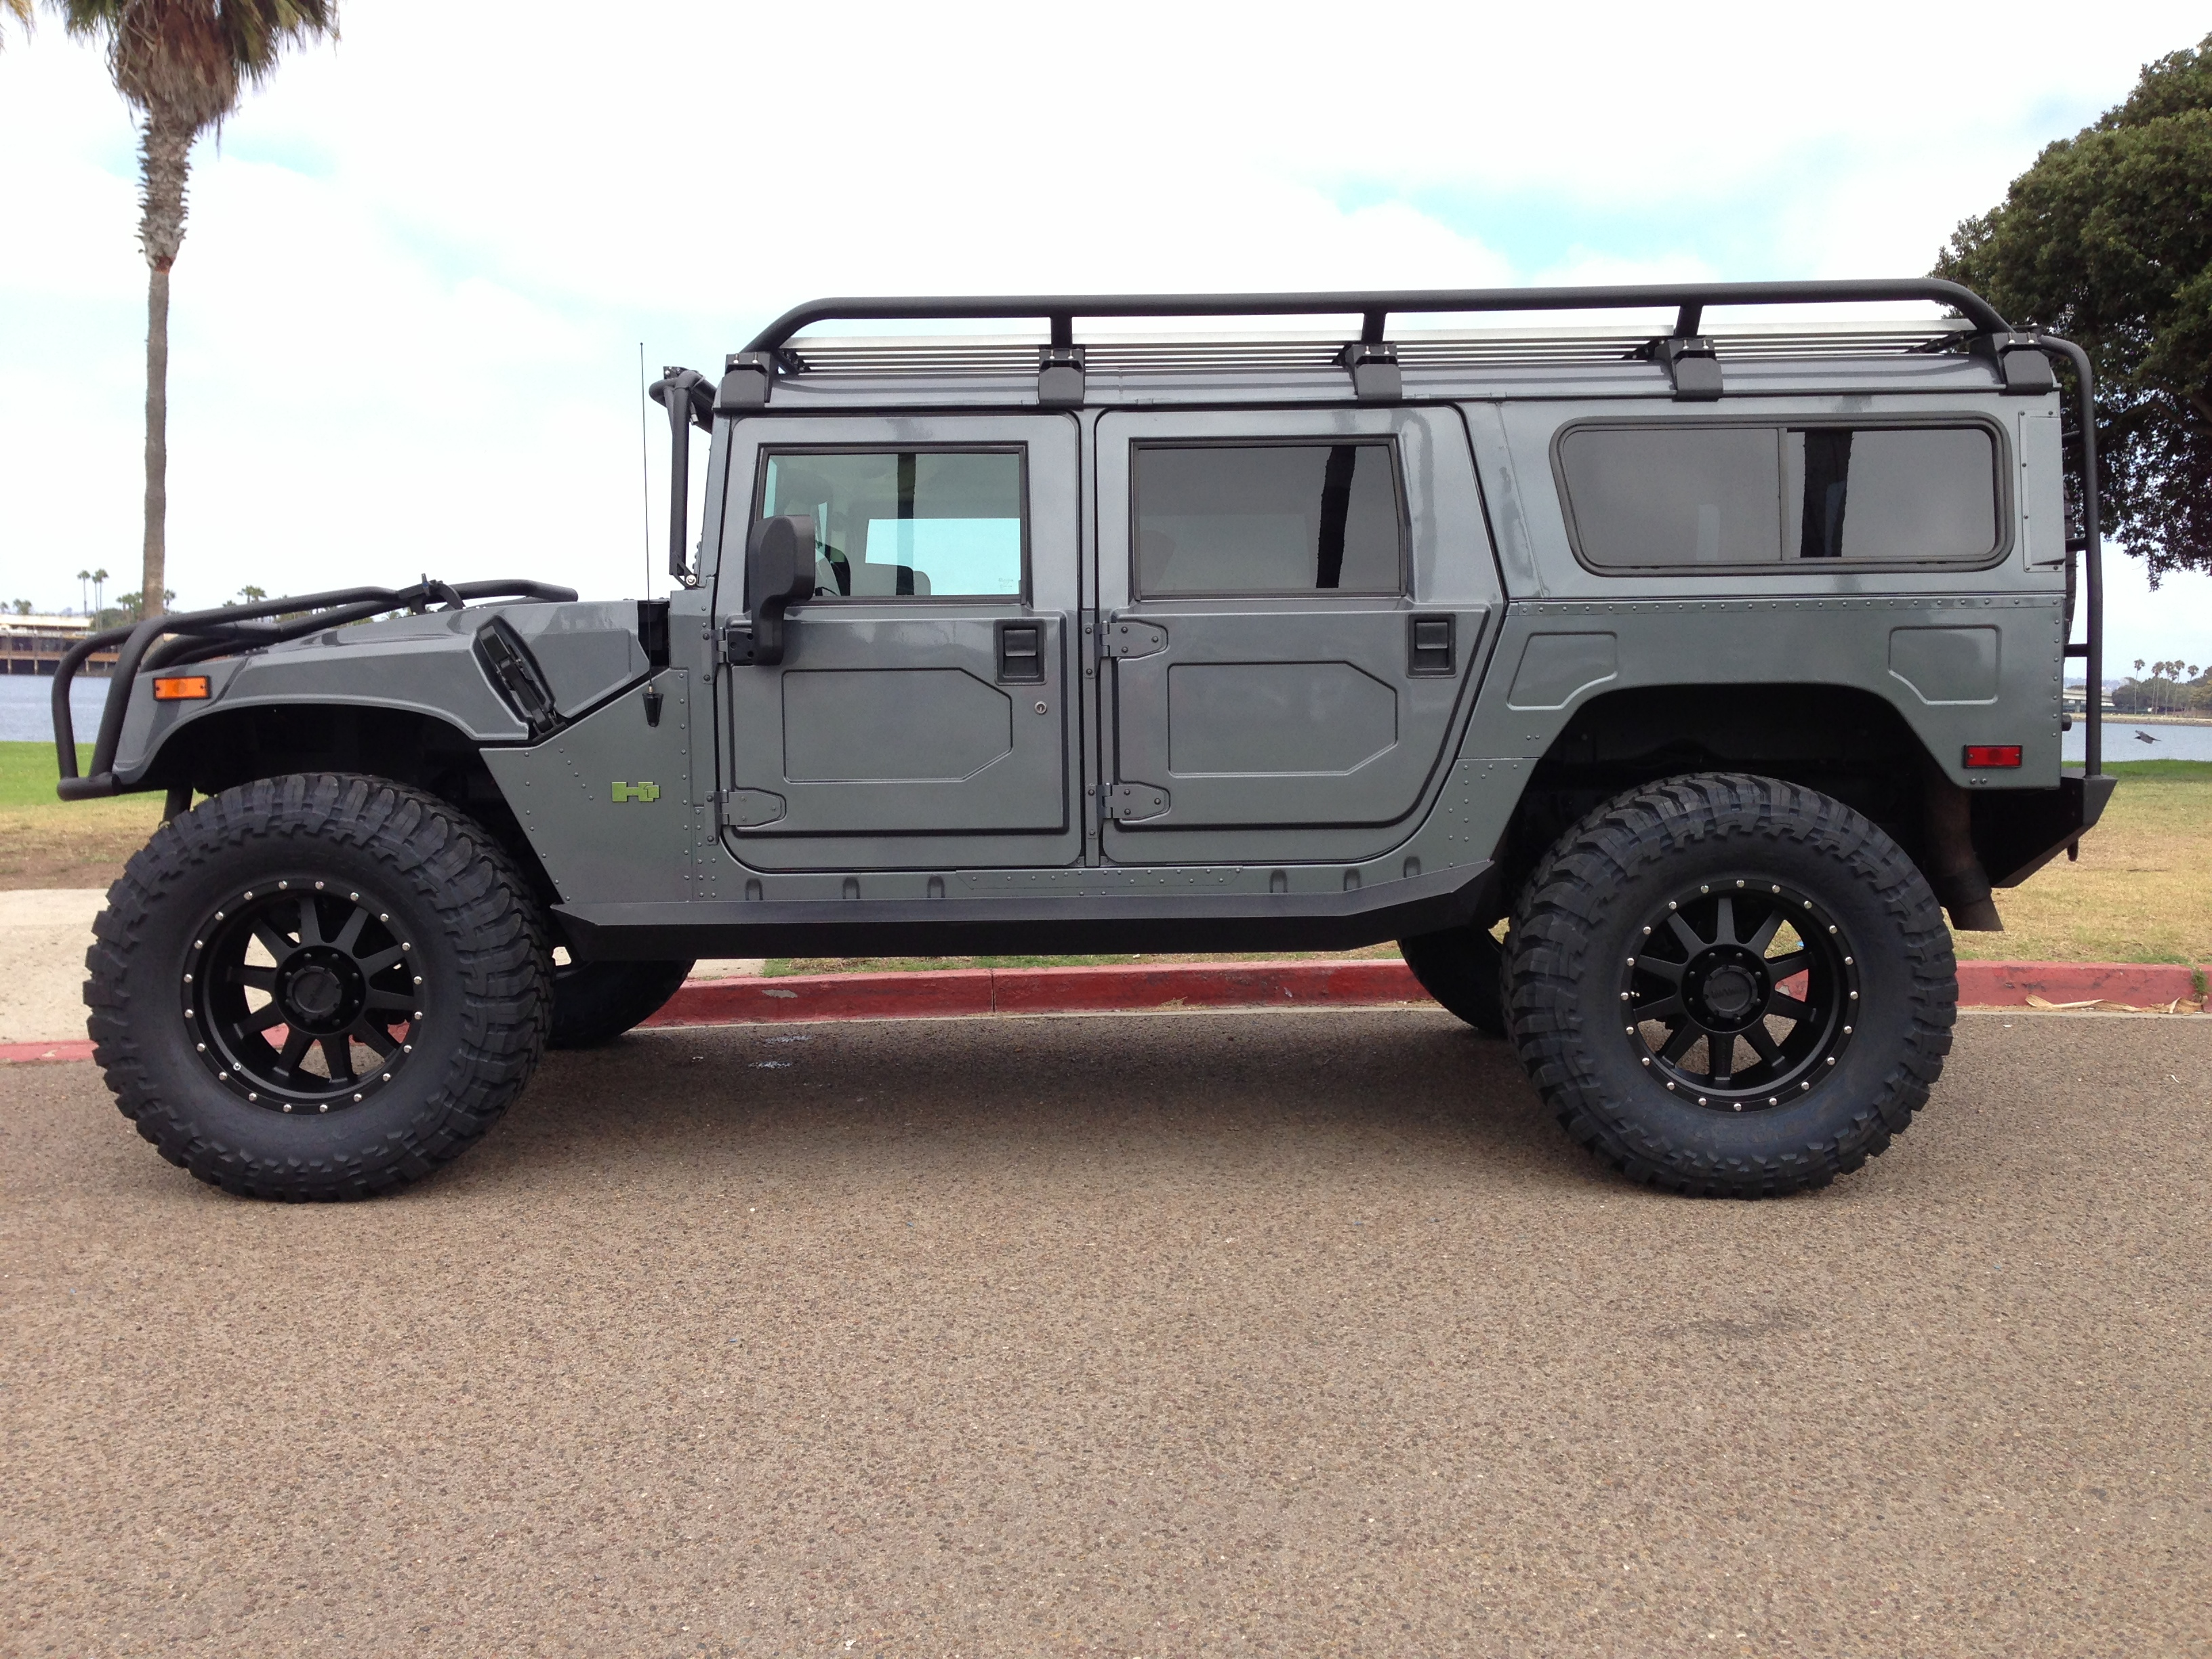 hummer h1 alpha wagon for sale the hummer guy. Black Bedroom Furniture Sets. Home Design Ideas